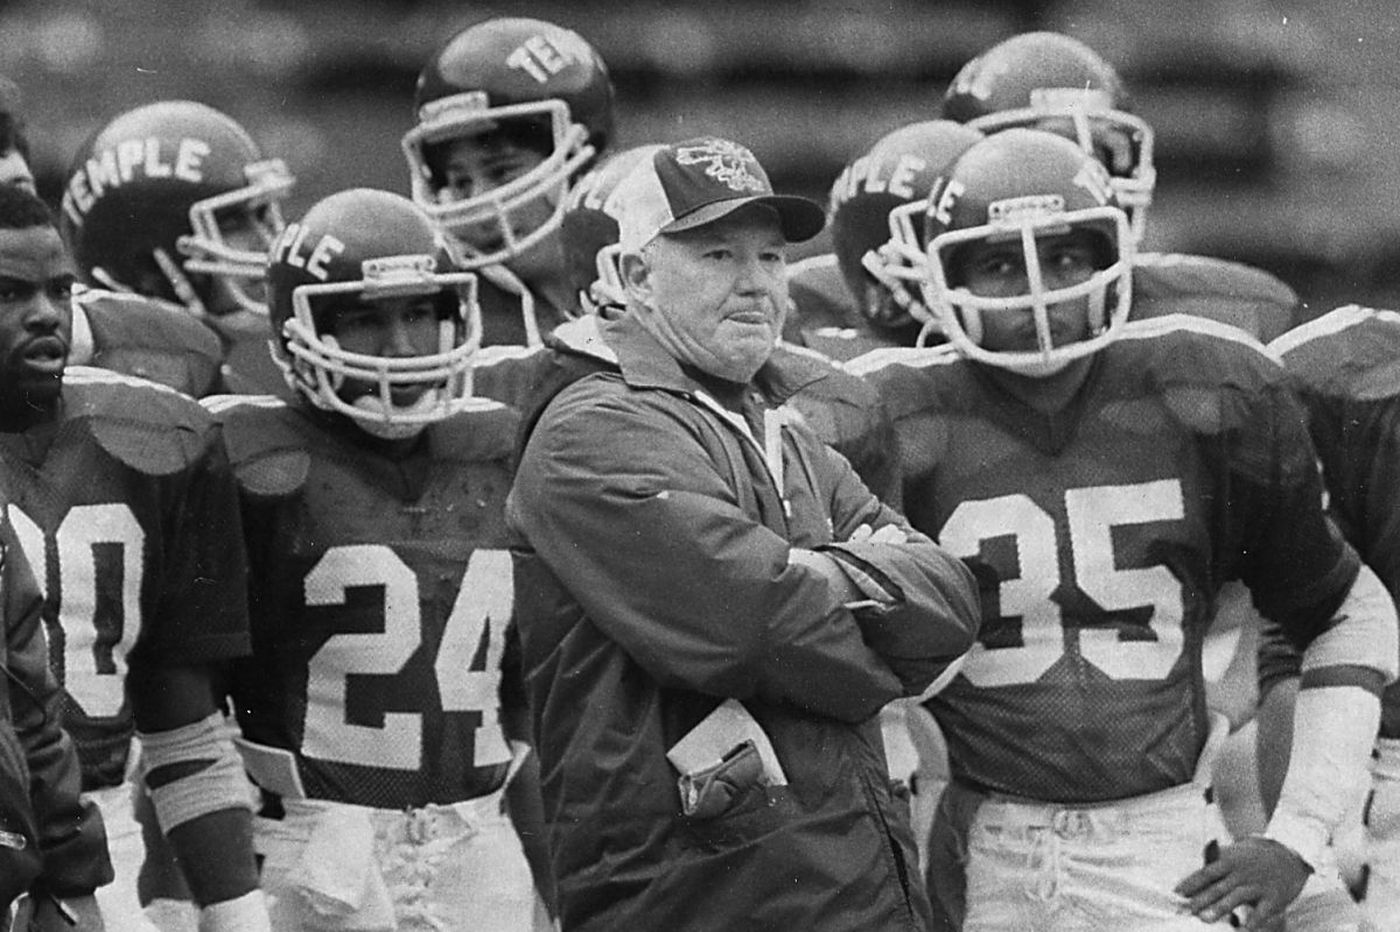 Wayne Hardin, former Temple football coach, dies at 91